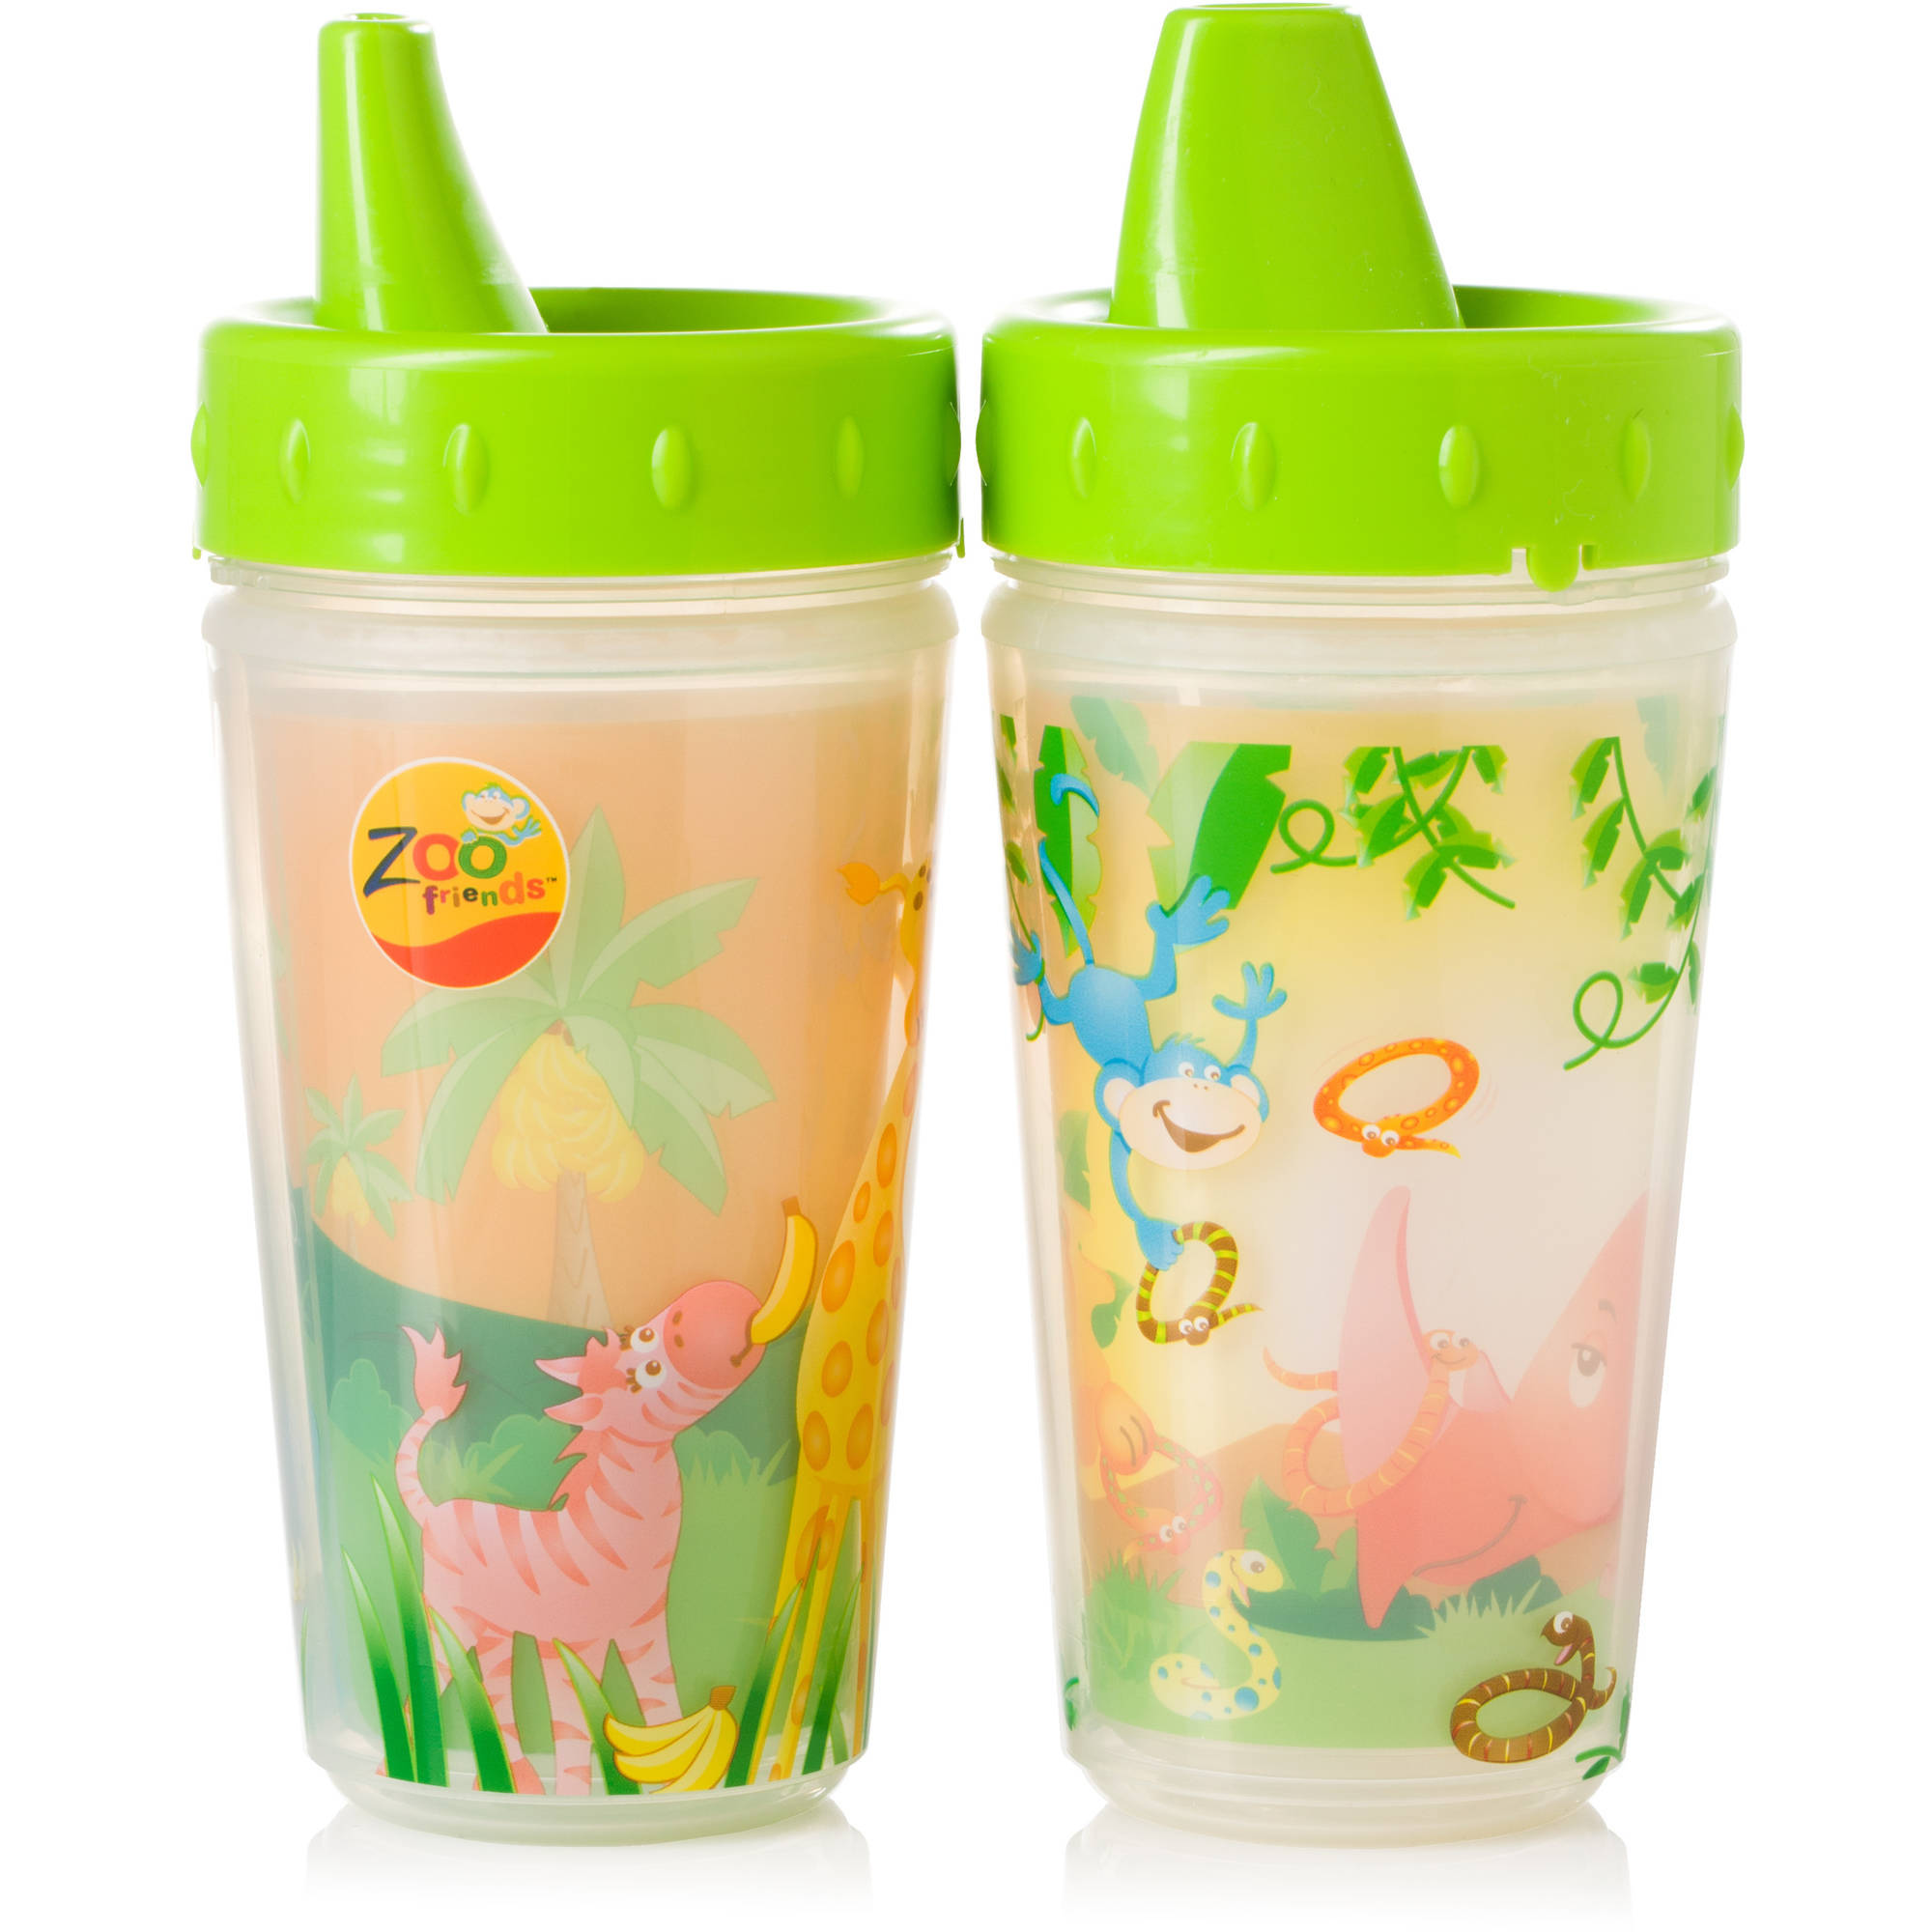 Evenflo Zoo Friends Insulated Sippy Cup, 2-Pack, Boy, BPA-Free